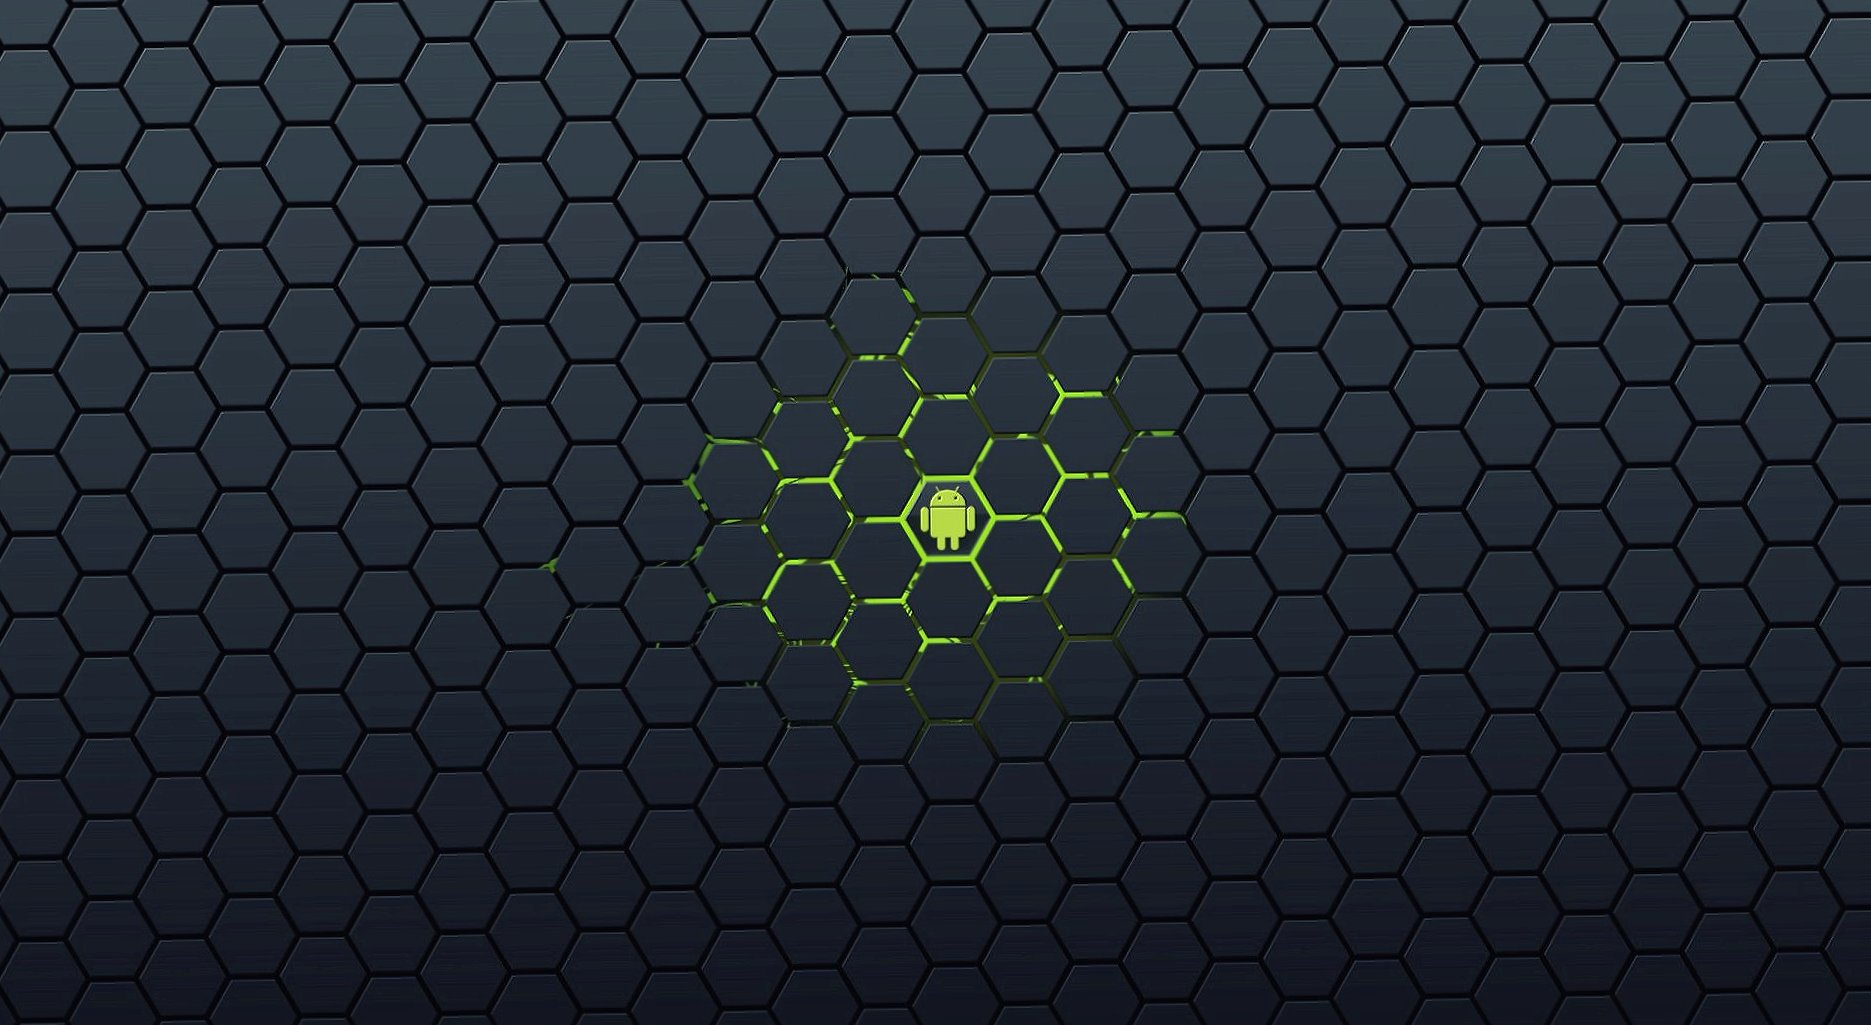 Hexagonal android wallpapers HD quality